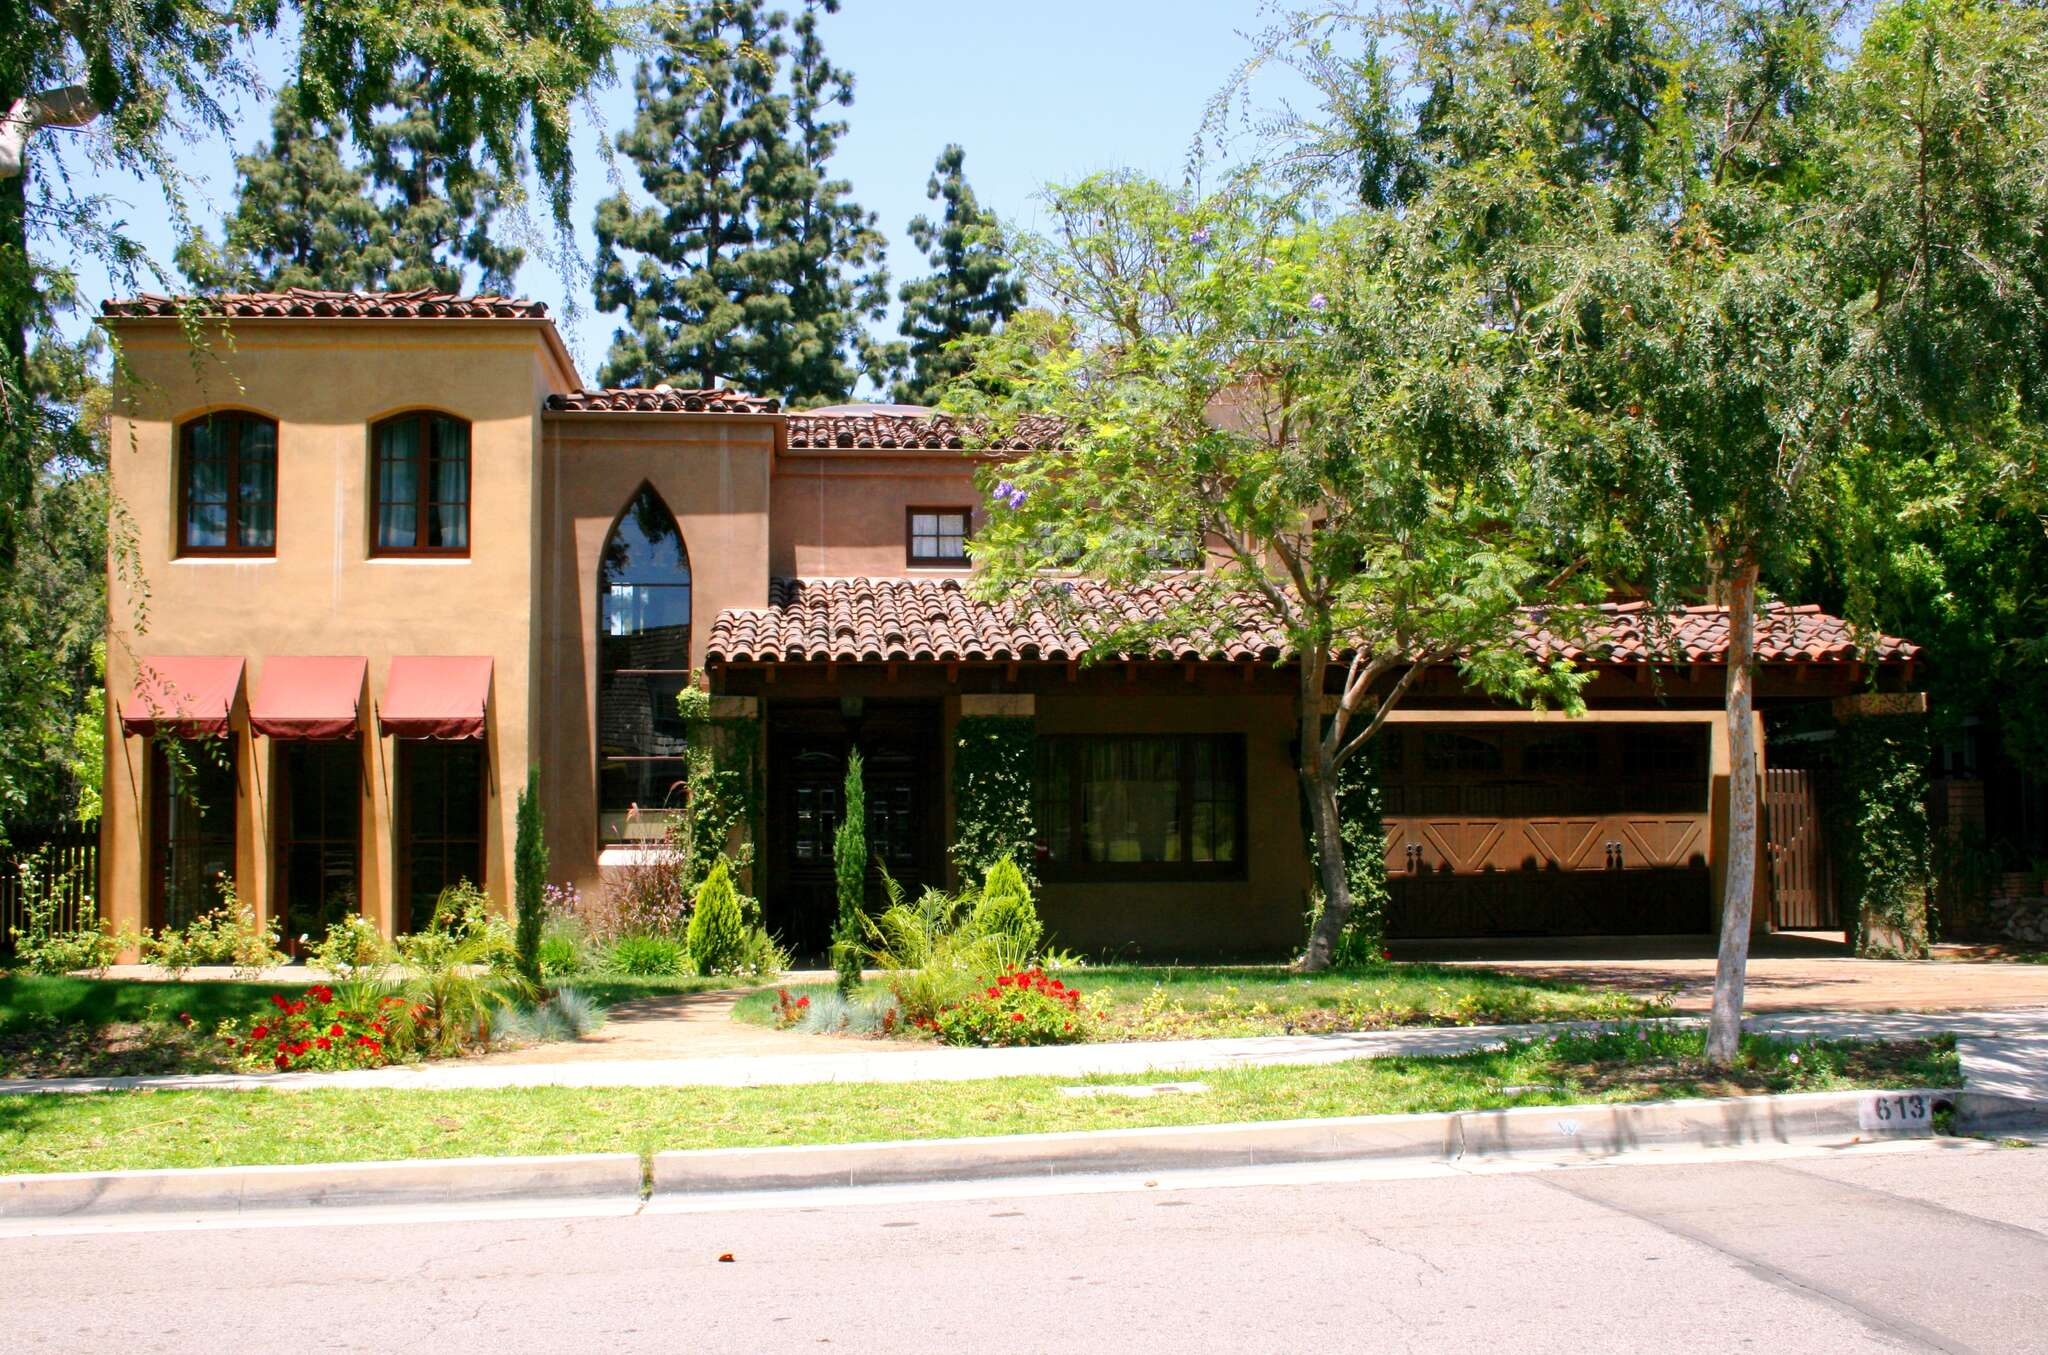 Single Family for Sale at 613 Valley View Fullerton, California 92835 United States